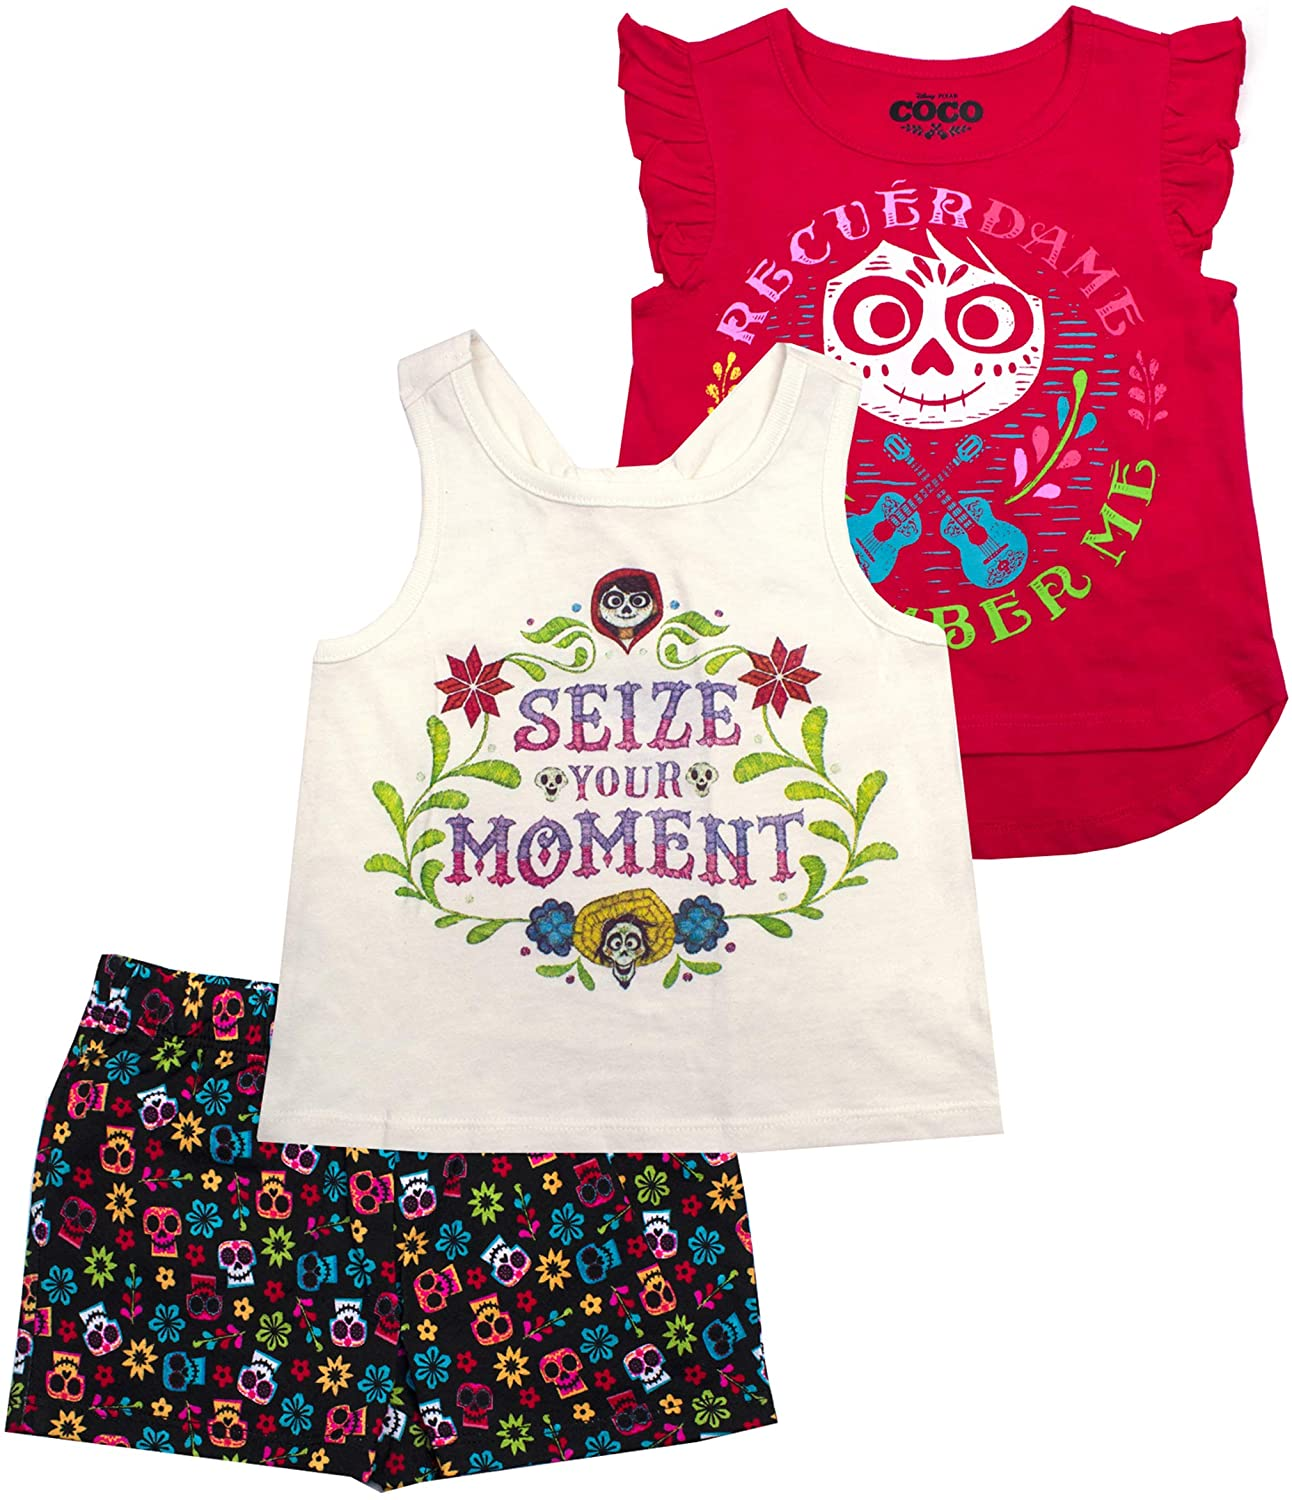 Disney Girls 3-Piece Shirts and Short Set: Wide Variety Includes Minnie, Frozen, and Princess